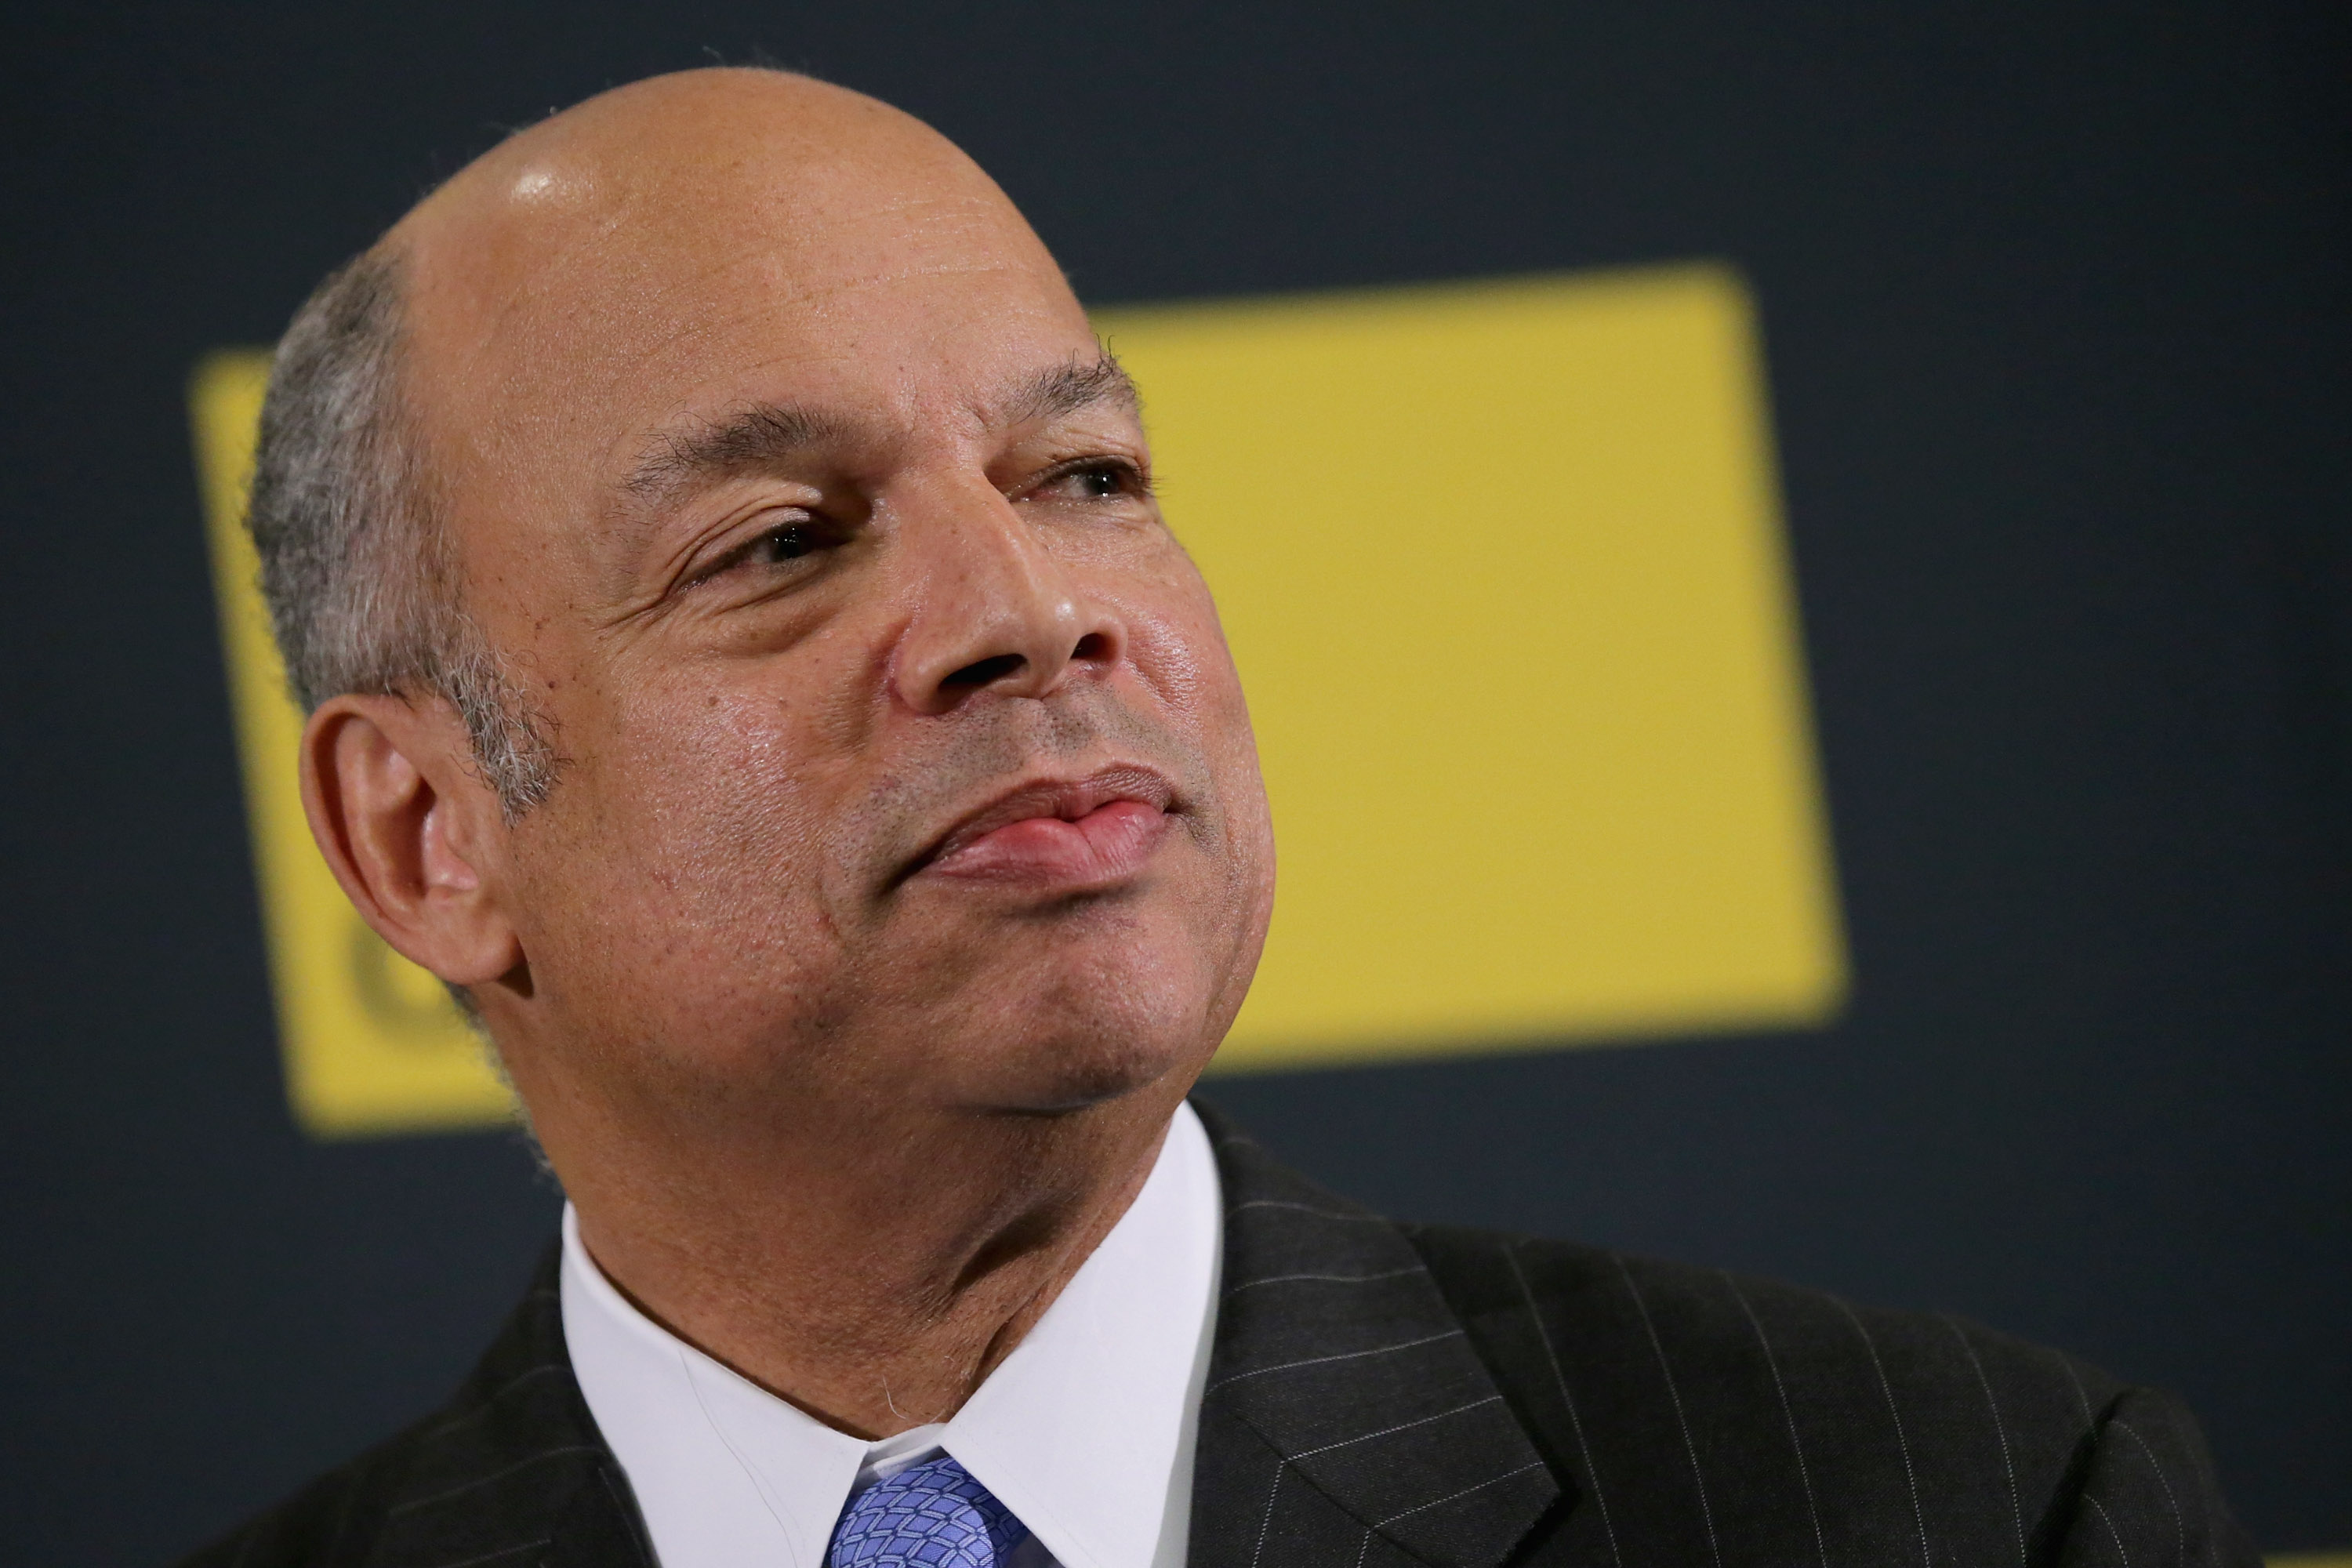 U.S. Homeland Security Secretary Jeh Johnson (R) participates in a conversation during an event sponsored by Defense One at the District Architecture Center December 7, 2015 in Washington, DC.